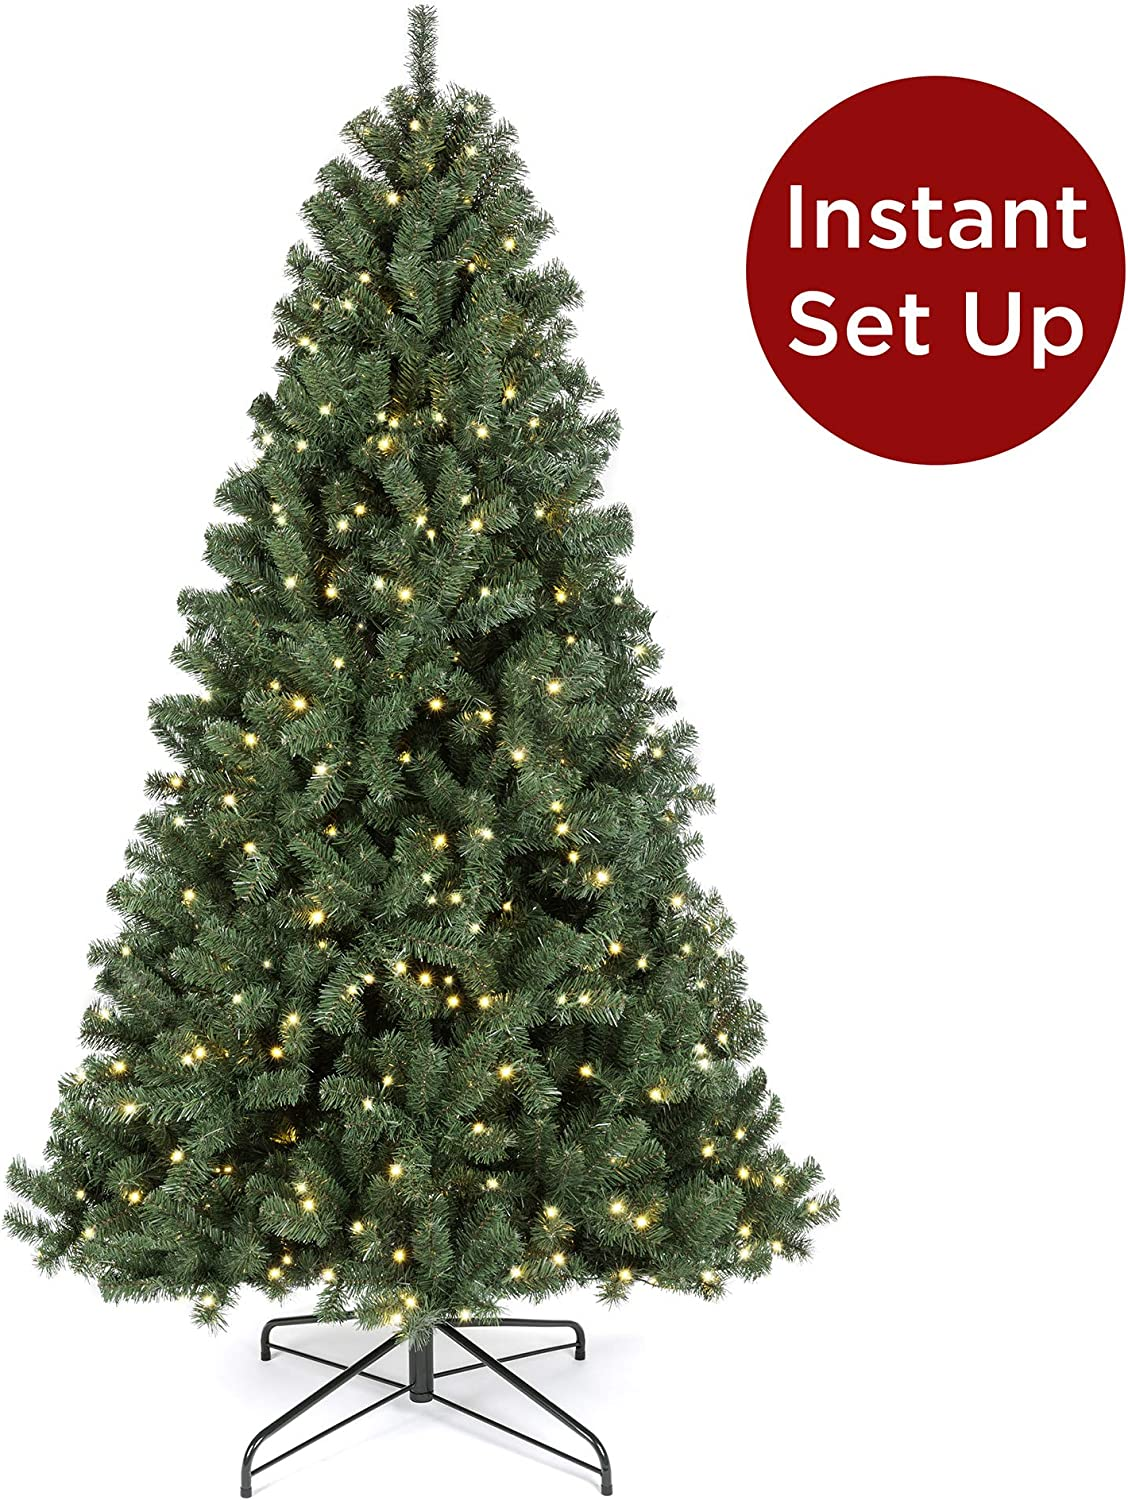 Best Choice Products 7.5ft Pre-Lit Instant Setup No Fluff Hinged Artificial Spruce Christmas Tree w/ 550 LED Lights